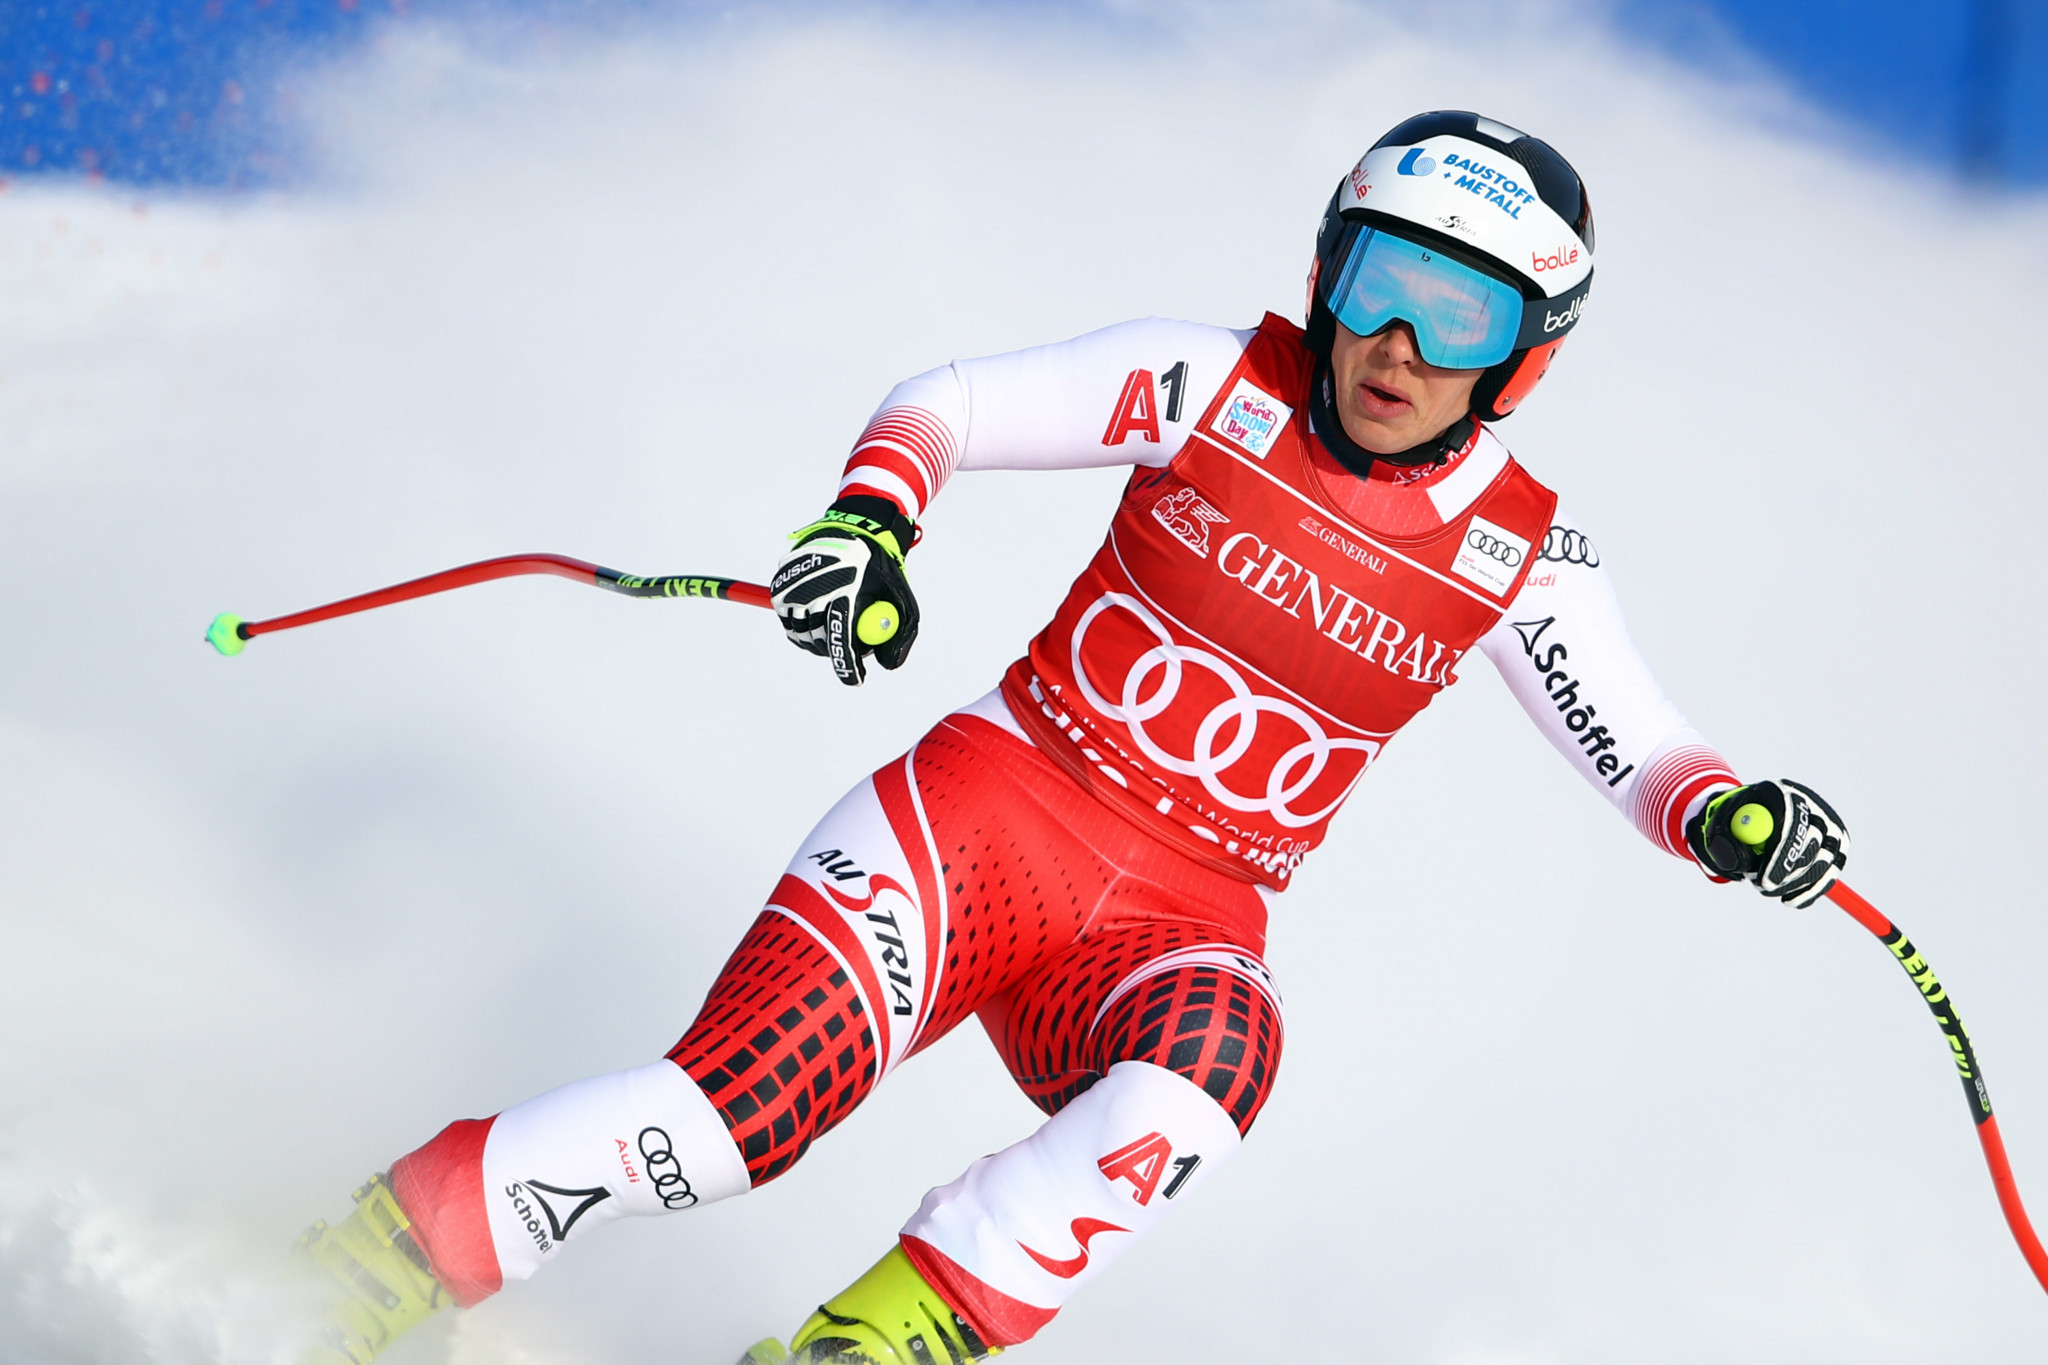 Schmidhofer dominates downhill again at FIS Alpine Skiing World Cup